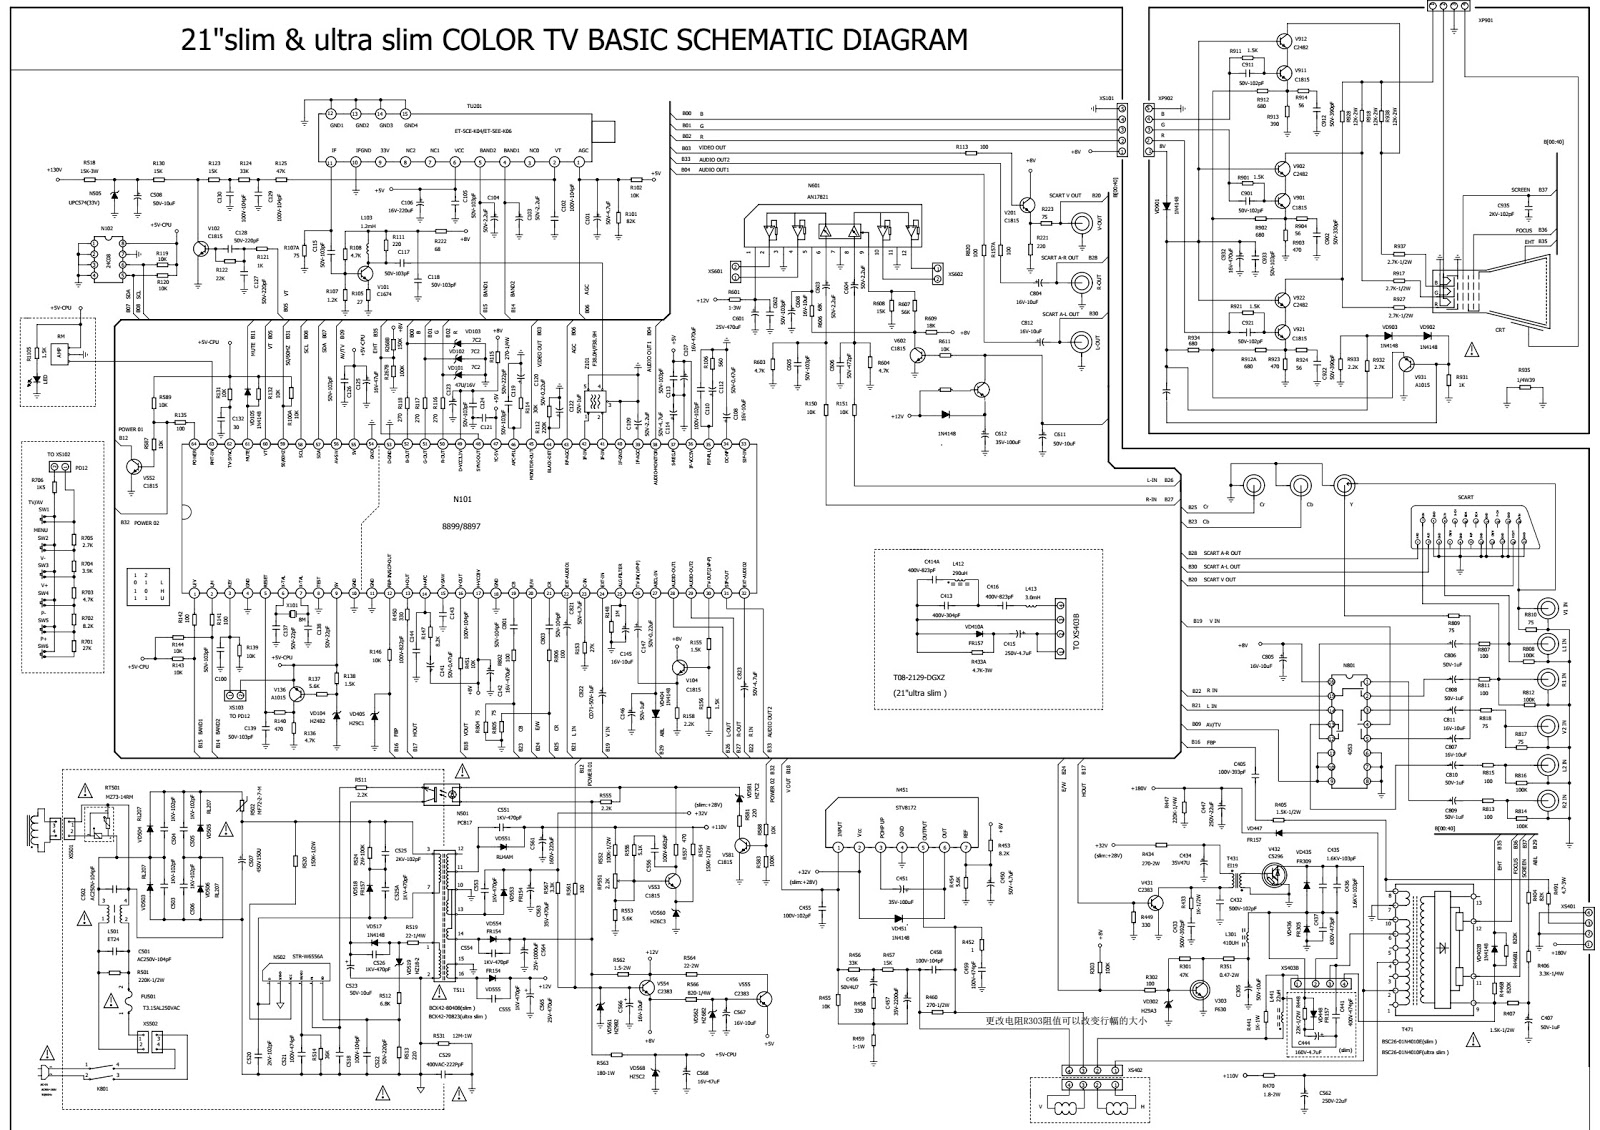 tv schematic diagrams circuits simple wiring schema tv circuit board repair diagram tv circuit diagram [ 1600 x 1130 Pixel ]